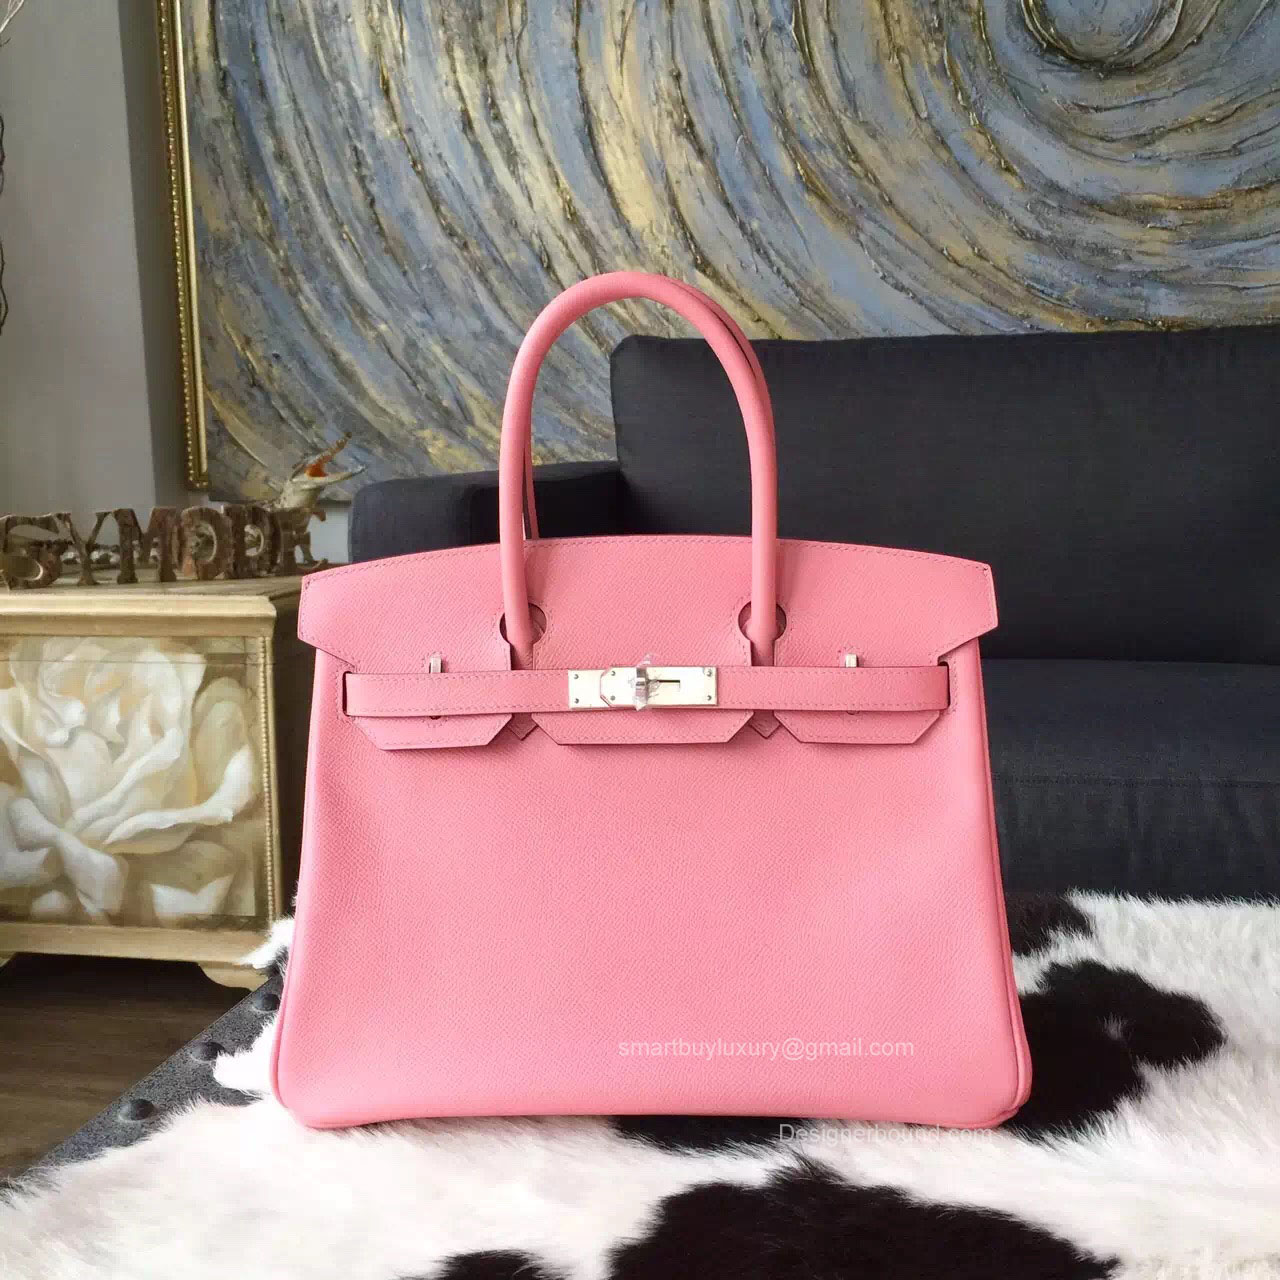 Hermes Birkin 35 Bag Rose Confetti 1q Epsom Leather Handstitched Silver hw